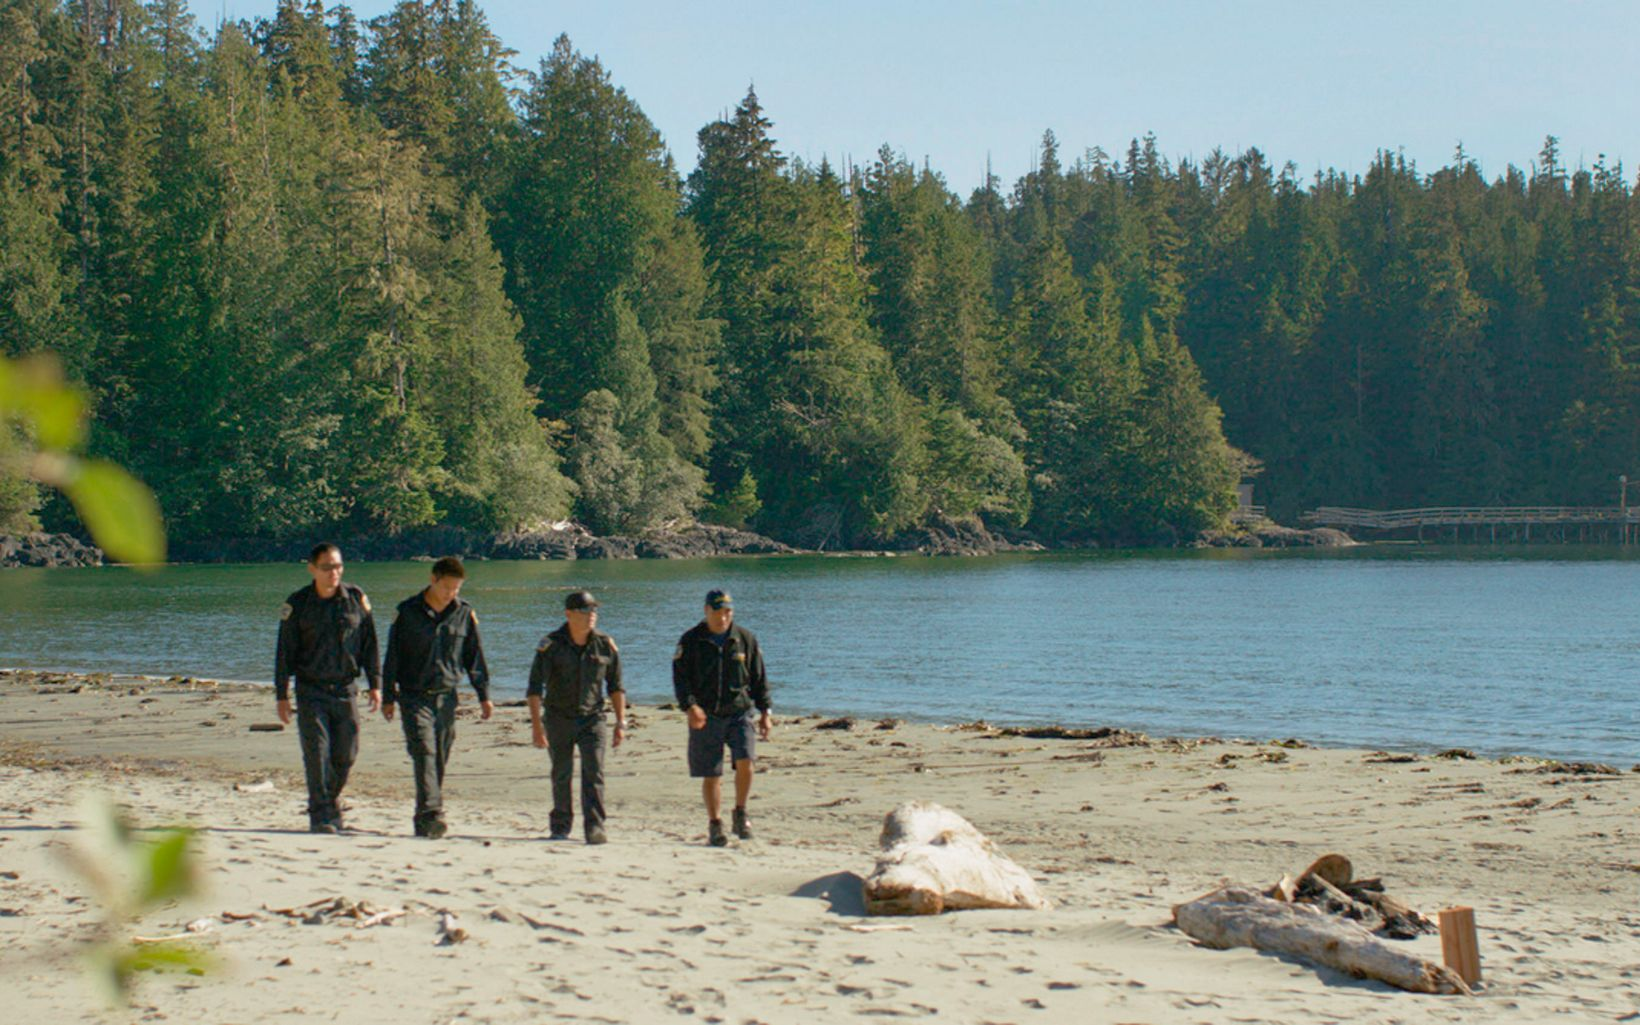 Across Canada, Indigenous guardian programs are essential for stewardship of land and water. Ahousaht Watchmen walk across beach in Canada.